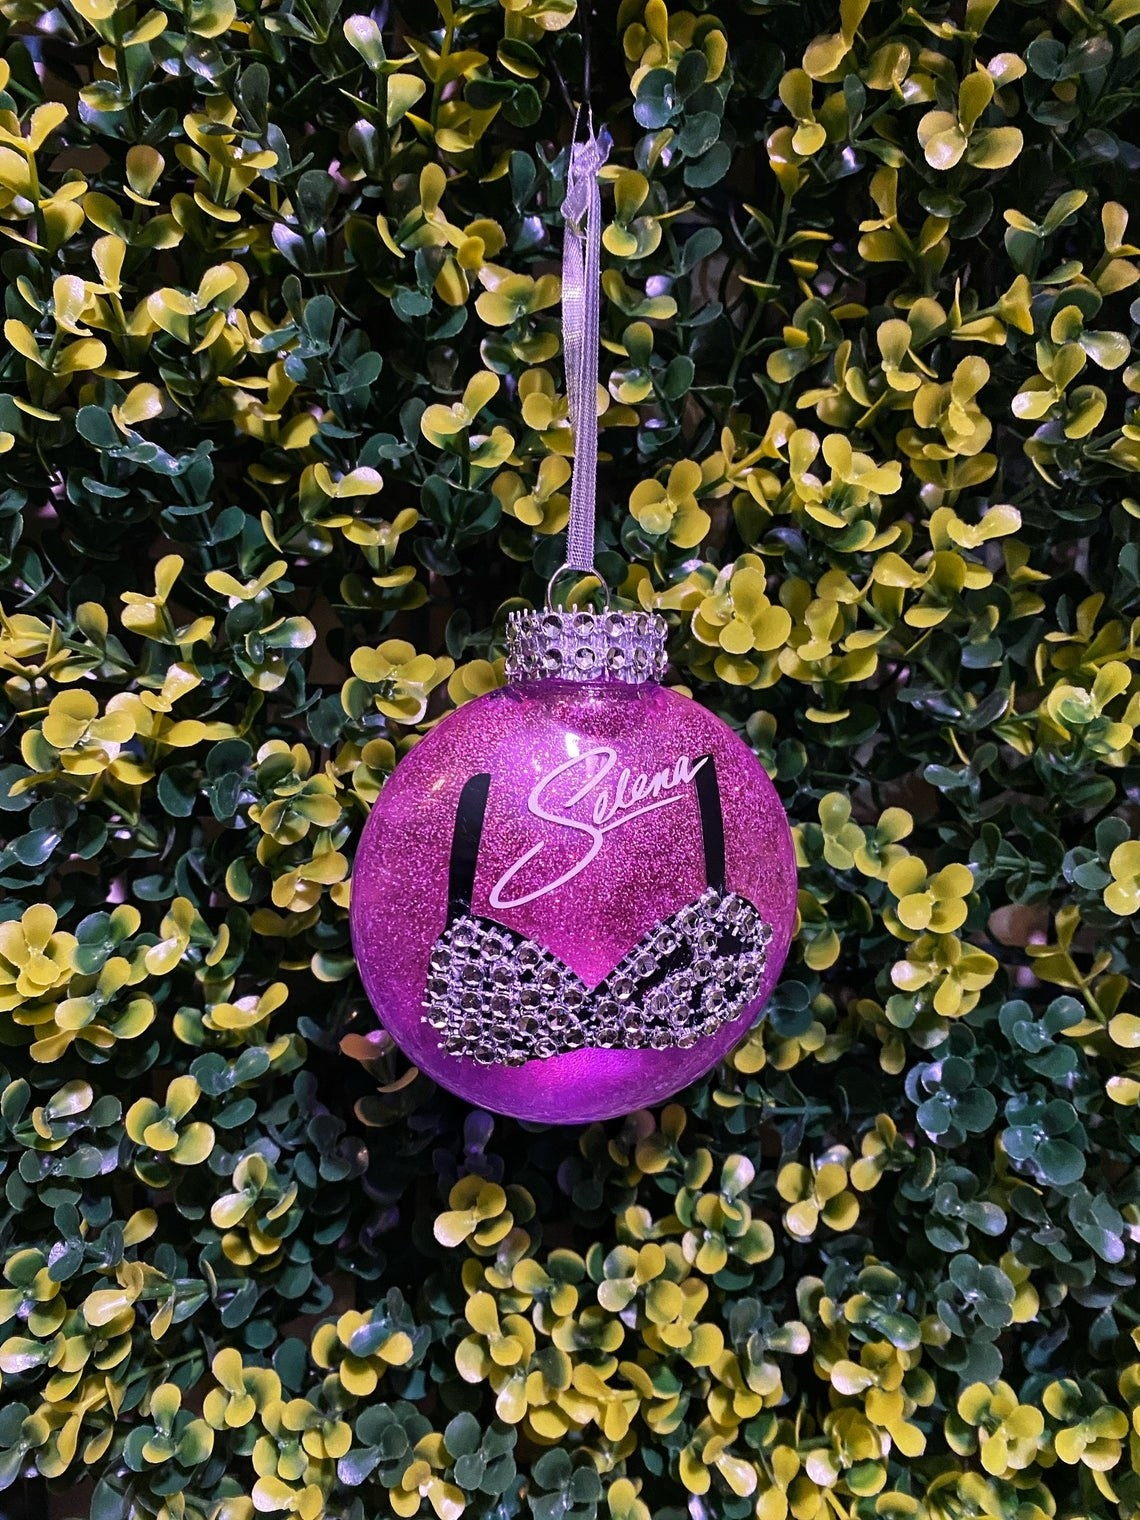 The glittering Selena ornament with the bedazzled bustier